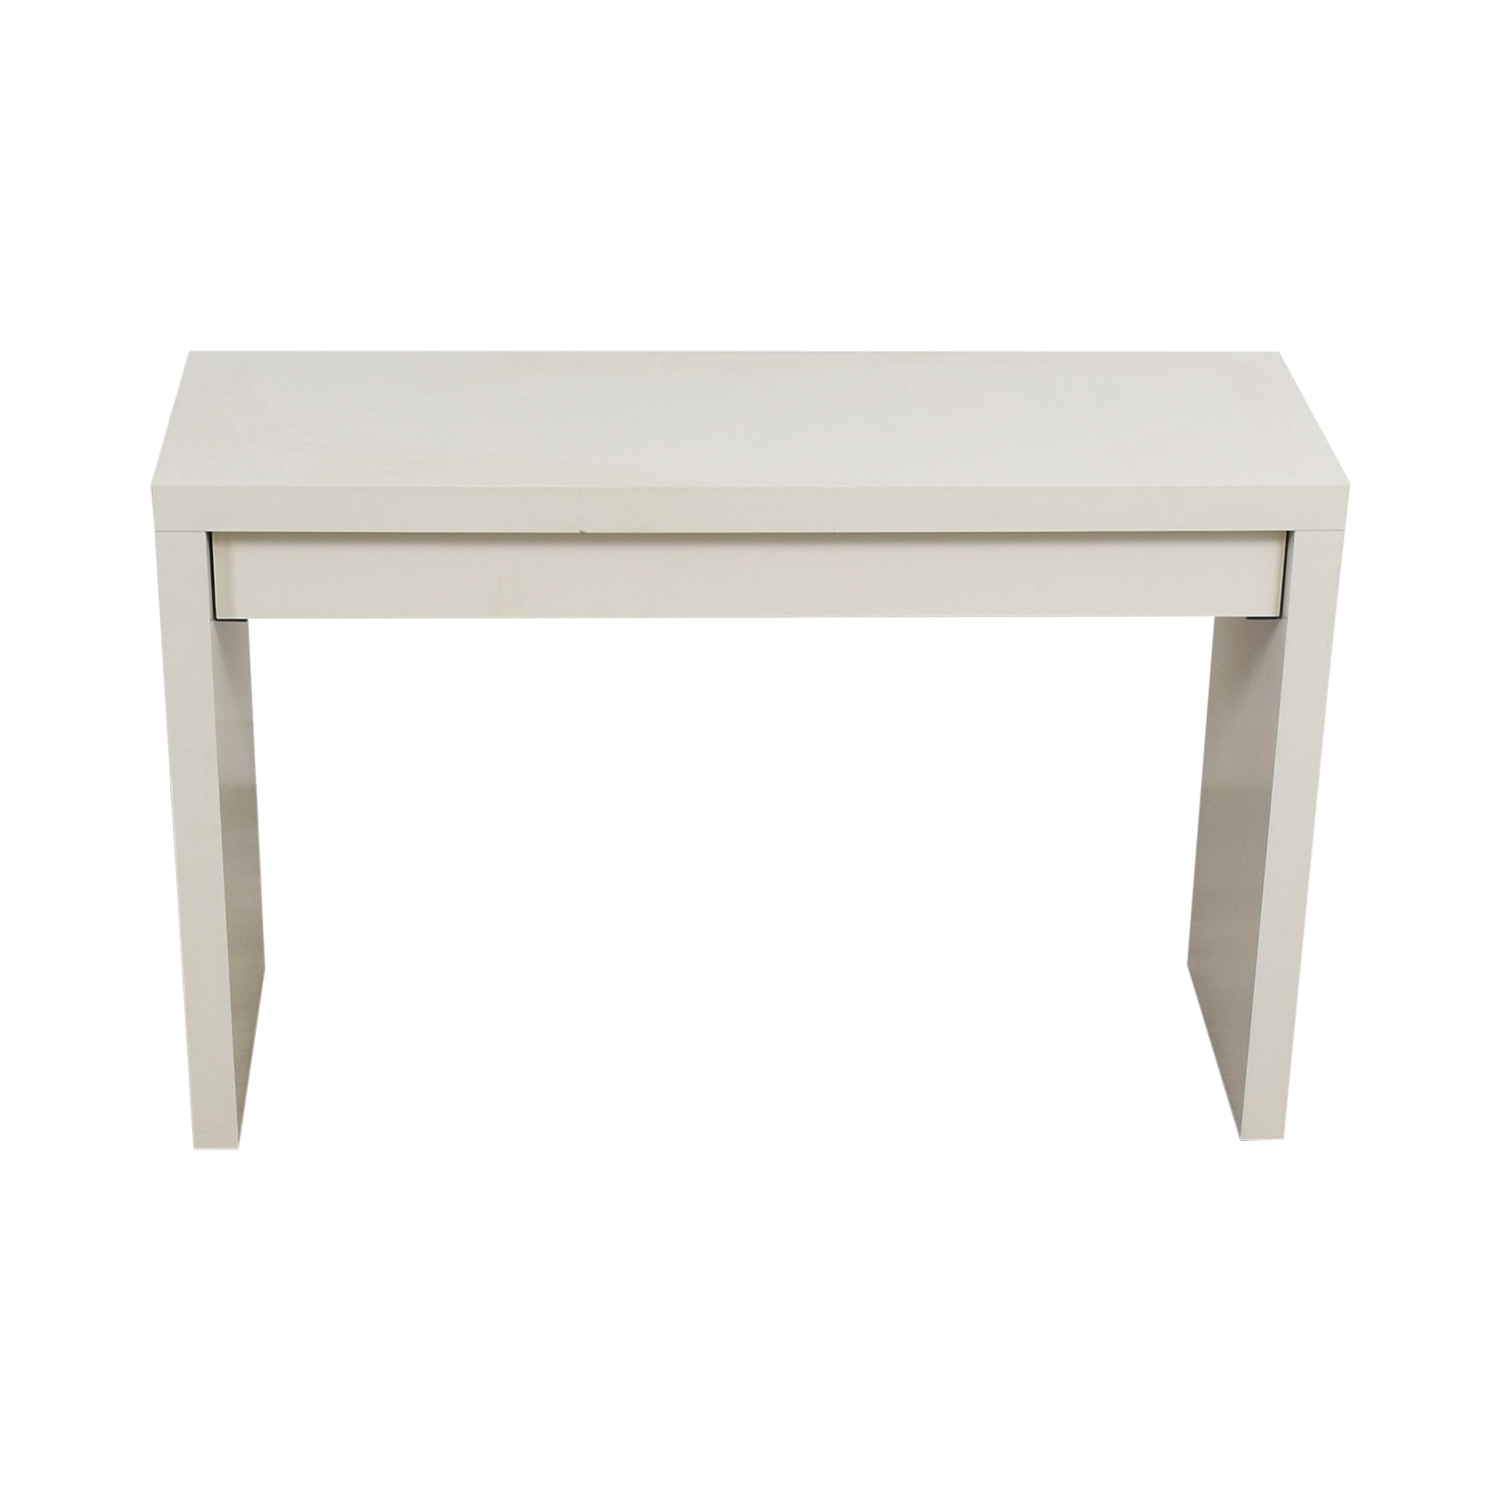 off ikea malm white single drawer narrow desk table used accent with tables rustic furniture target wine rack purple lamp gray nesting teak outdoor dining small round oak coffee